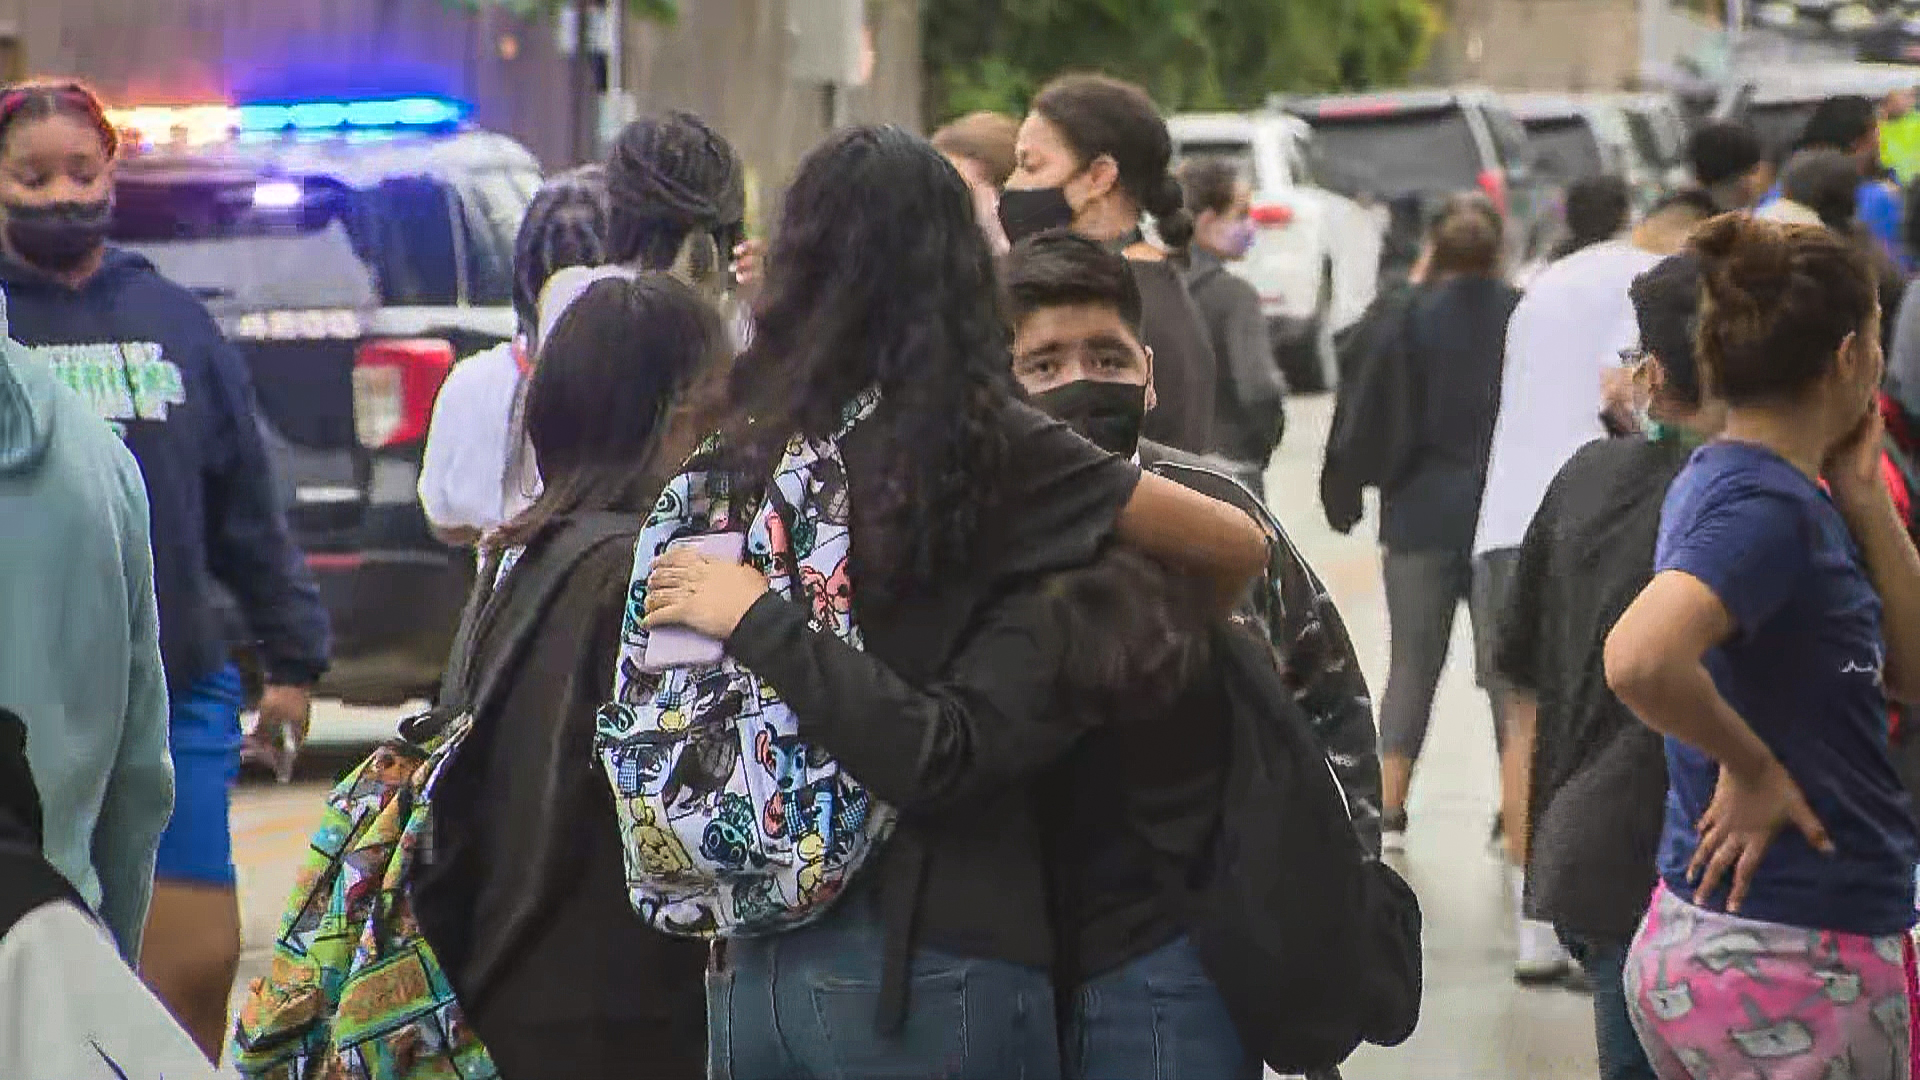 Shooting at Houston high school leaves administrator wounded, former student in custody